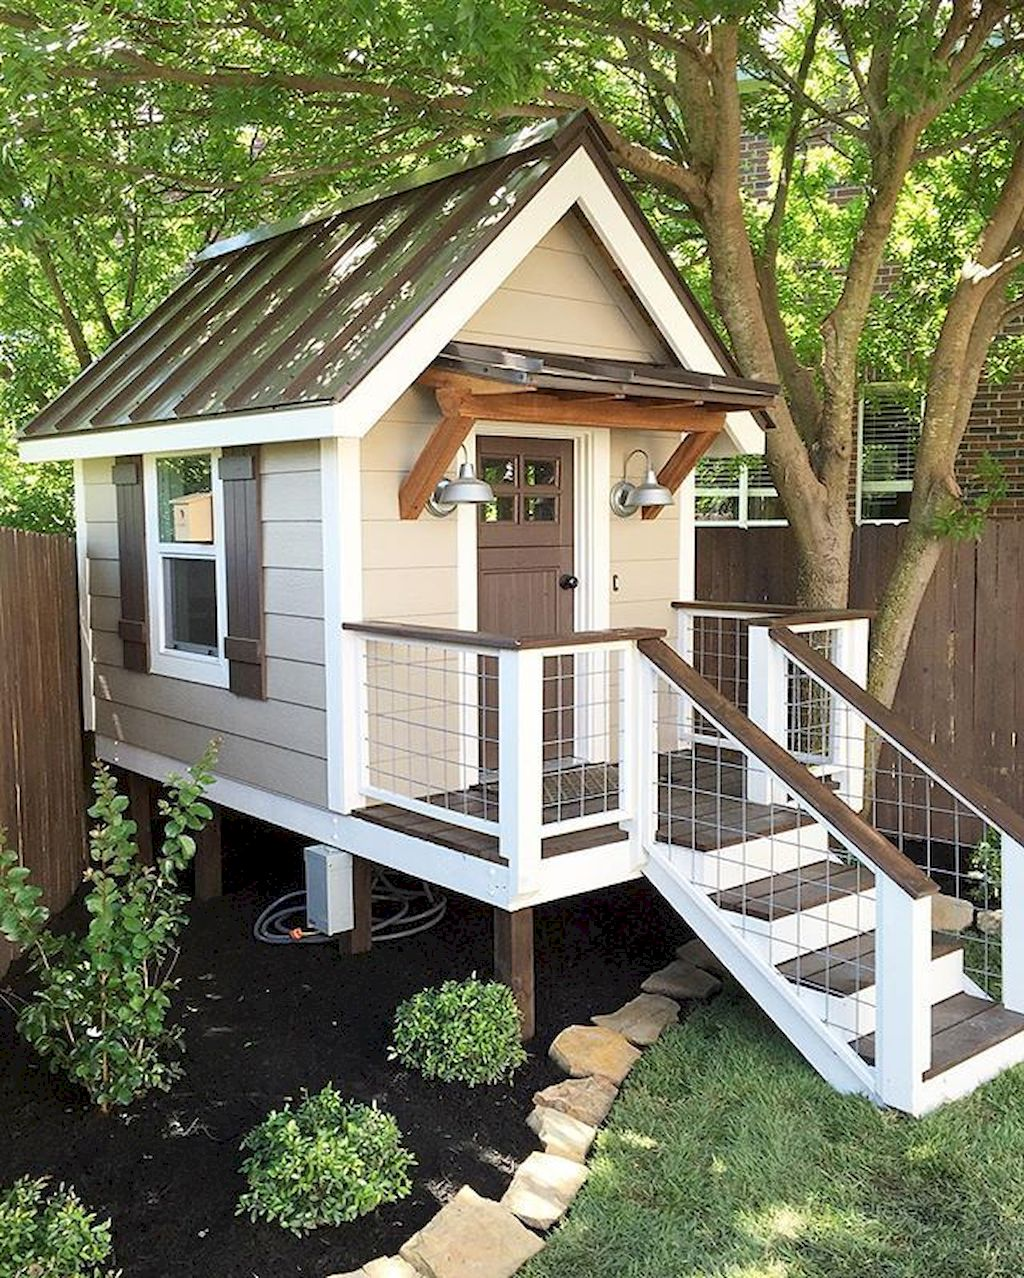 Attractive Playhouse Plan Into Your Existing Backyard Space